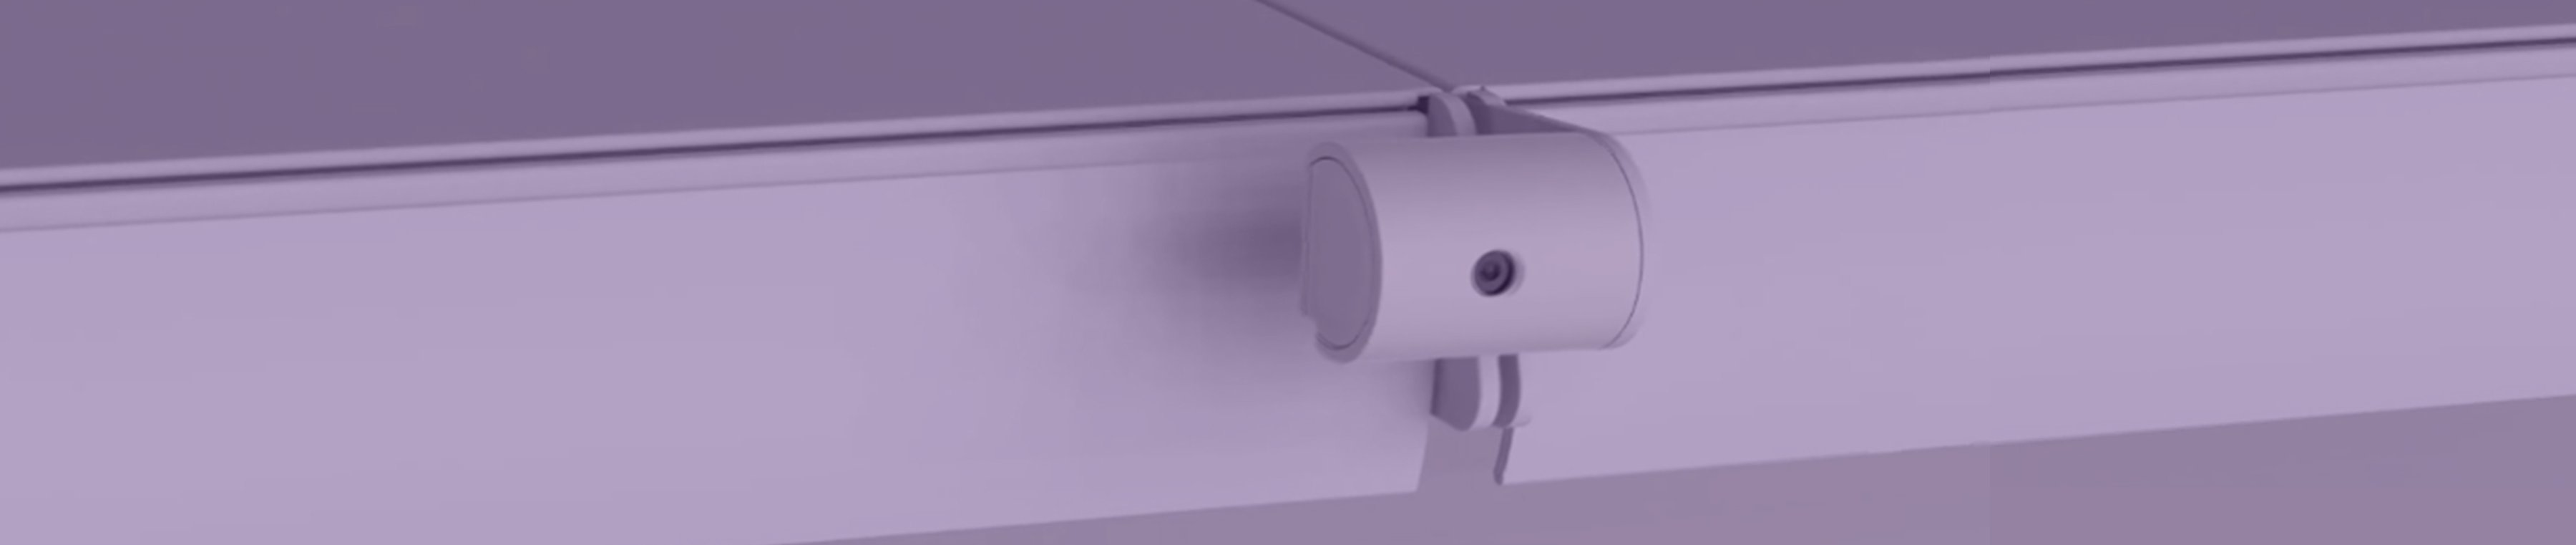 Retail COVID Landing Page Banner 3